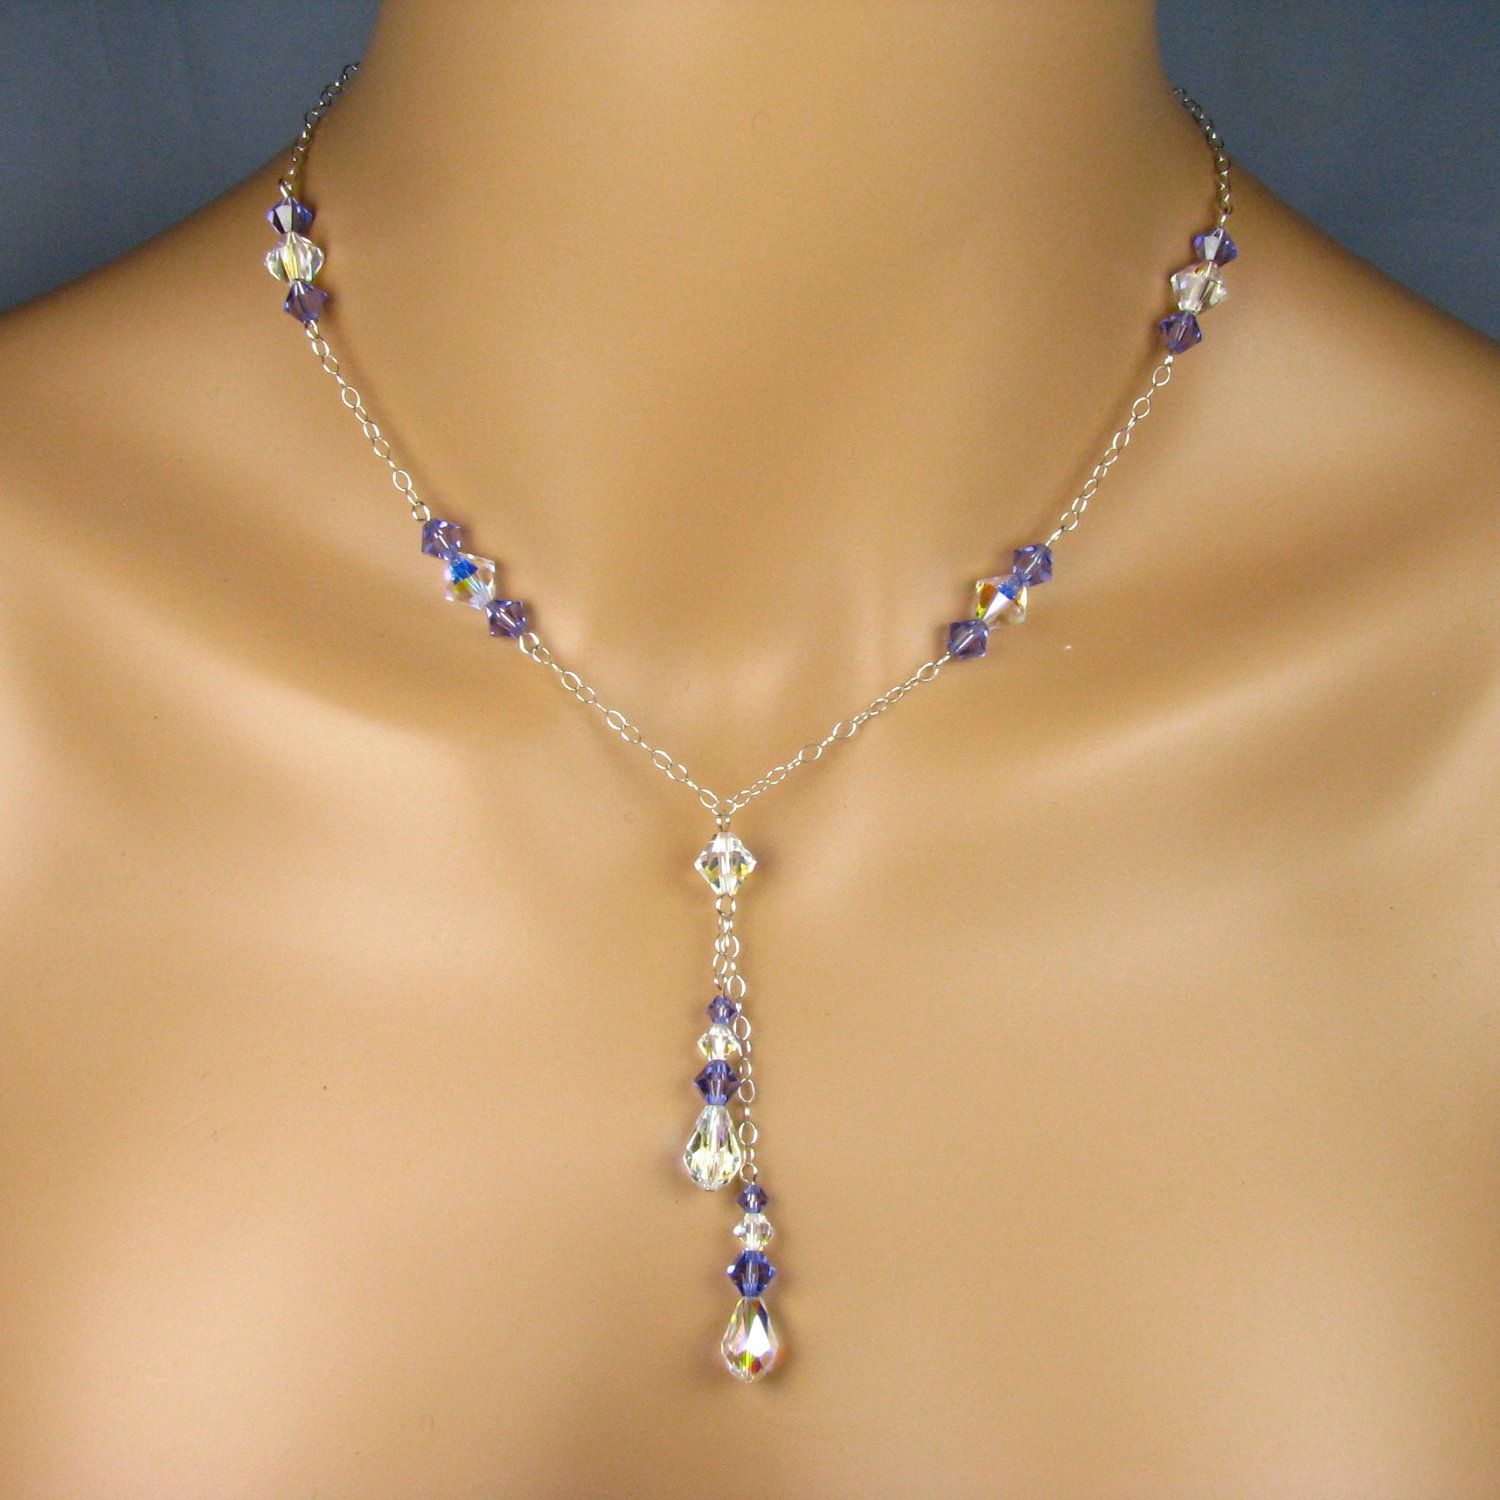 Bridesmaid Necklace Sterling Silver Chain Swarovski Crystals